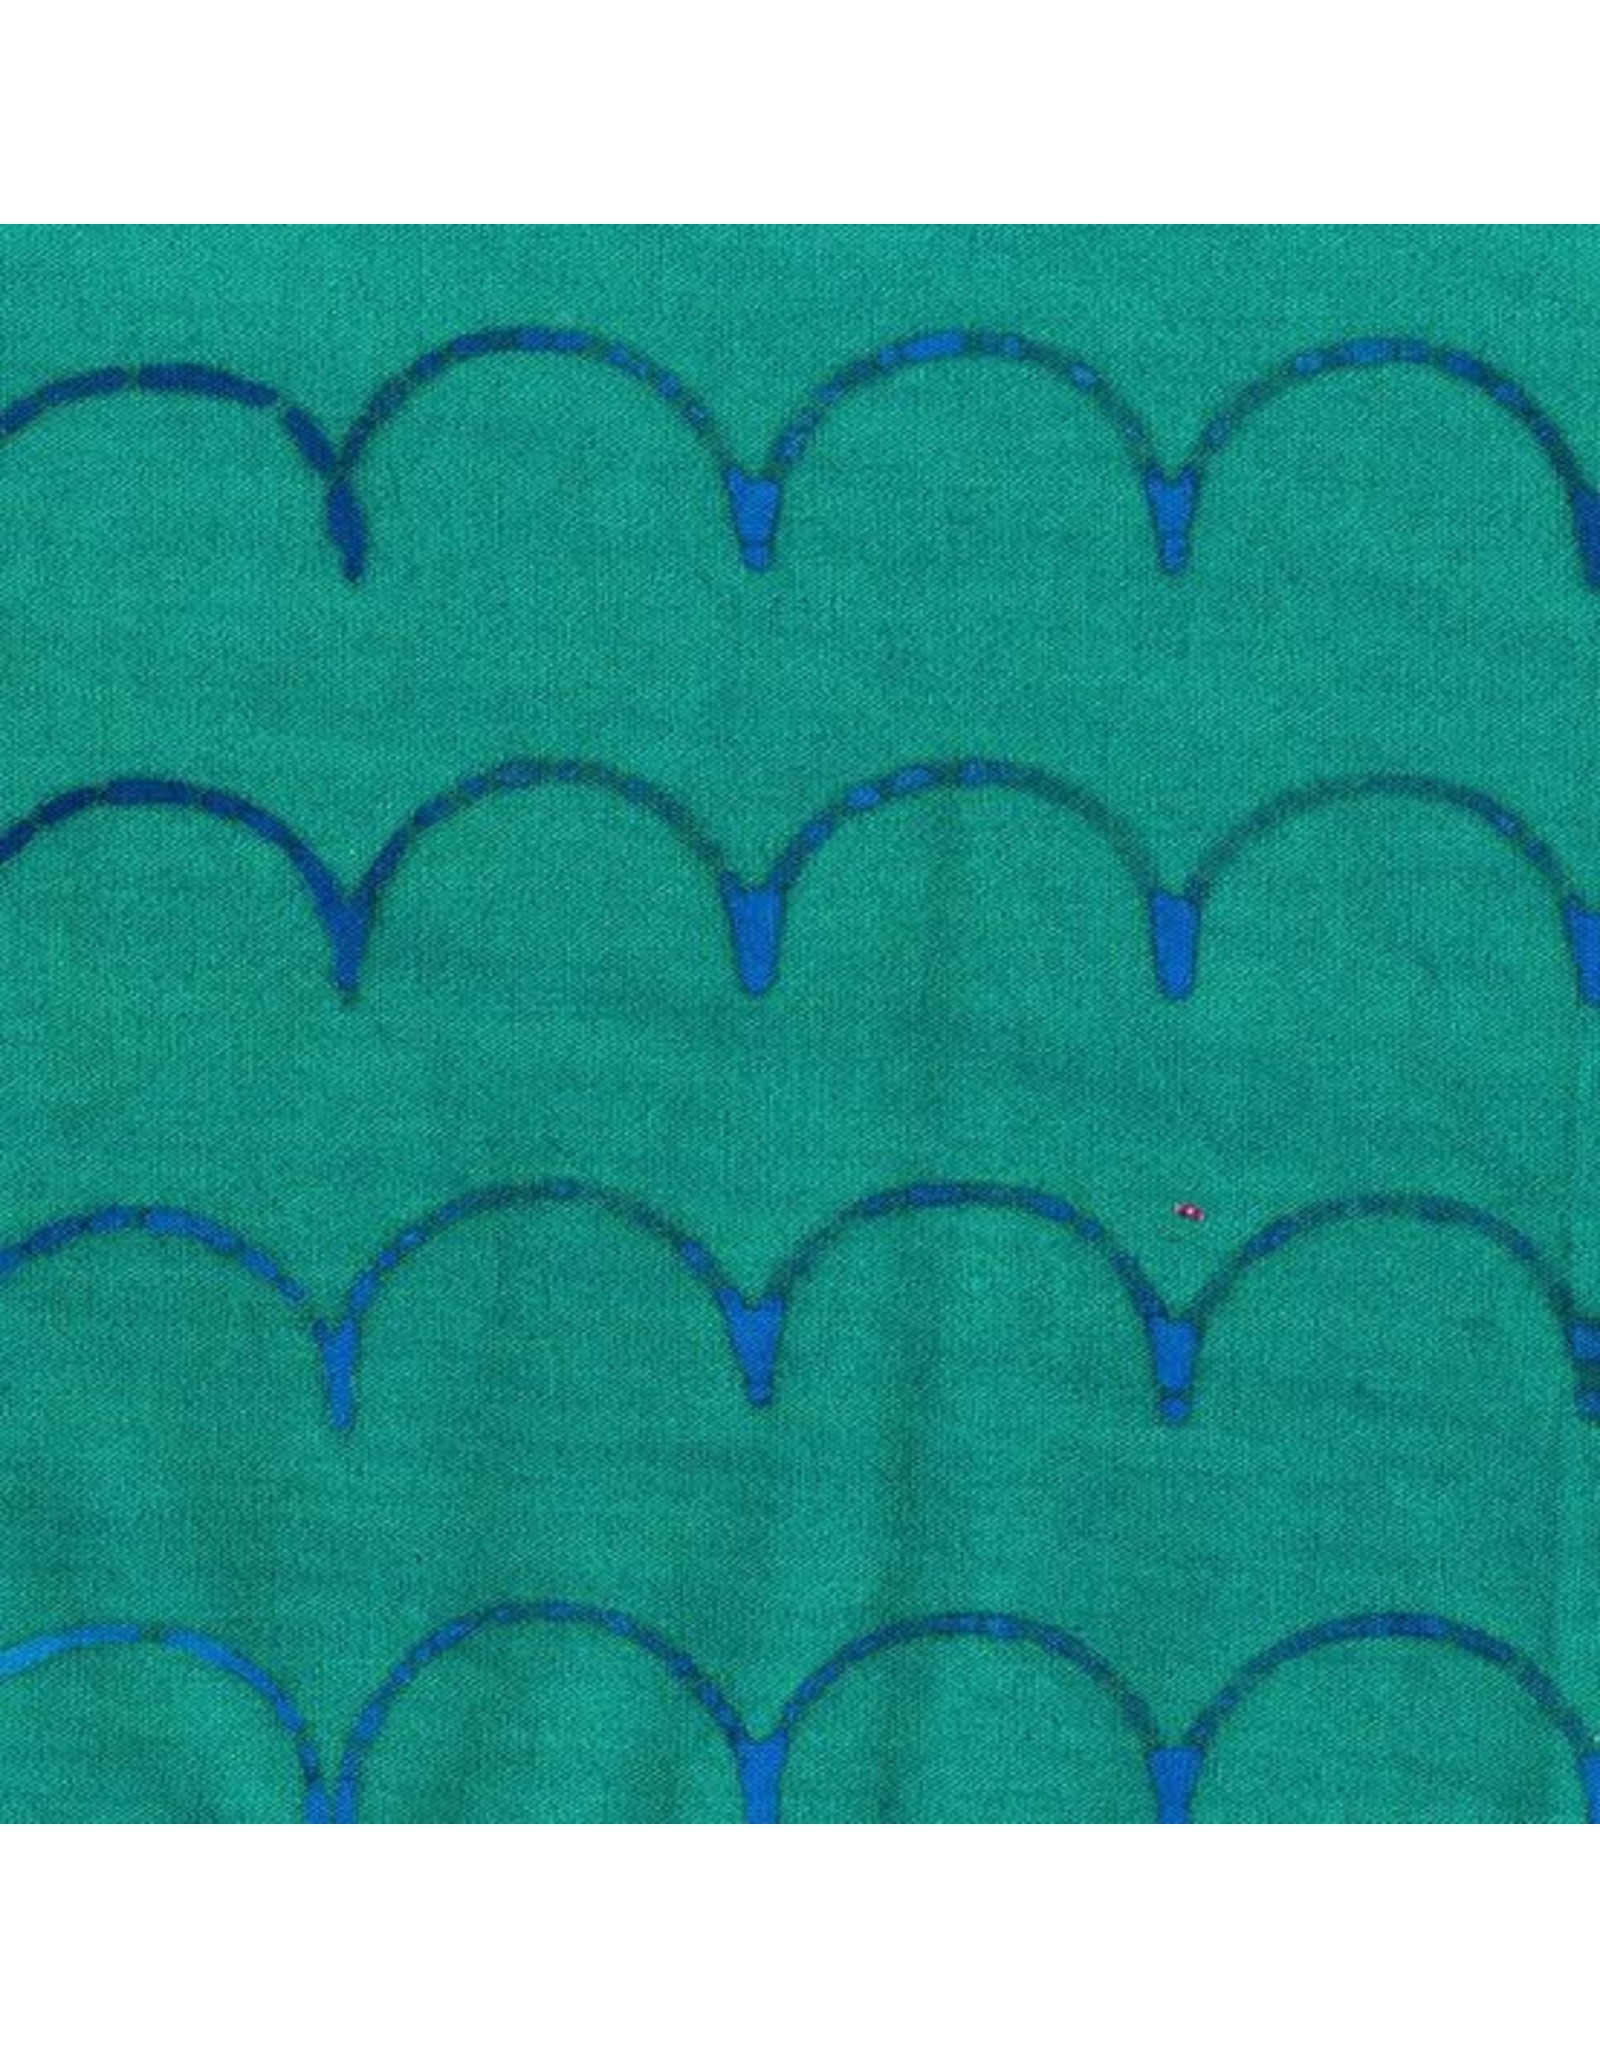 Alison Glass Stitched Handcrafted, Scallop in Denim, Fabric Half-Yards AB-9042-B1